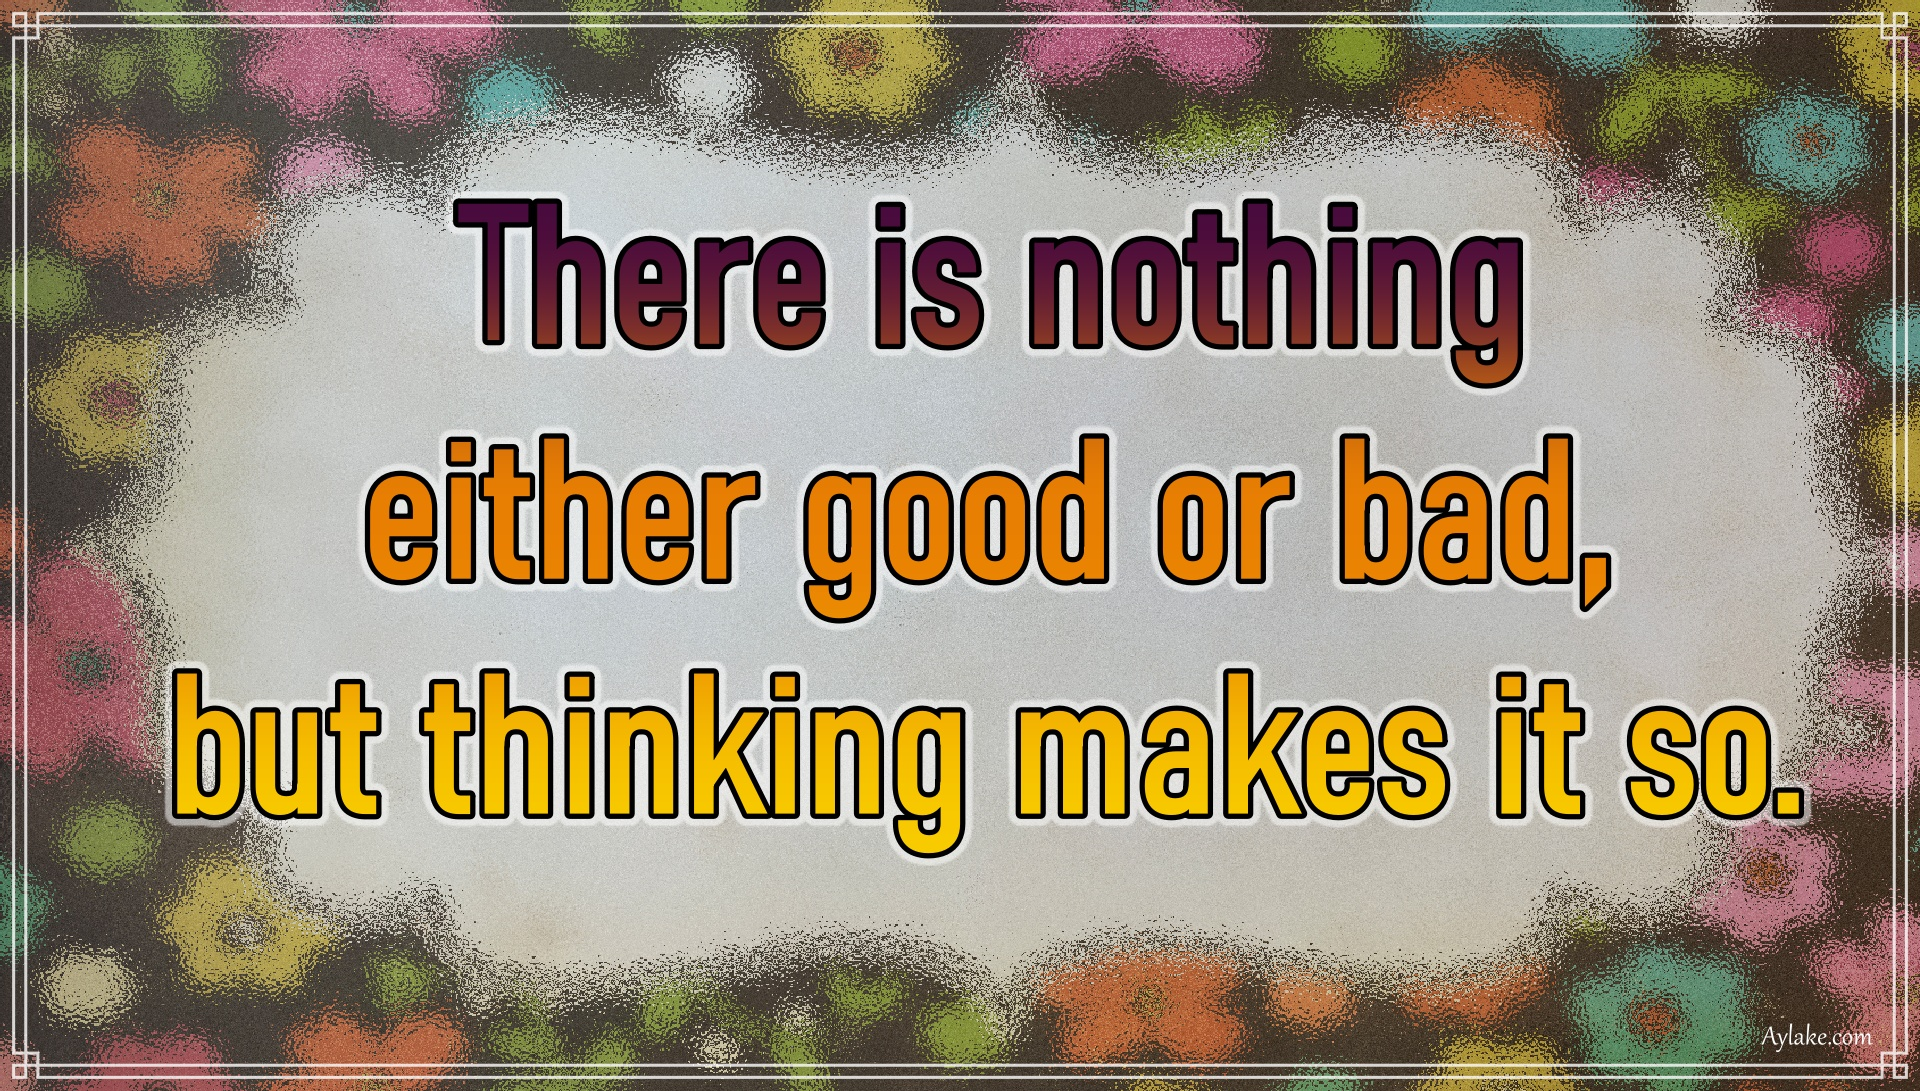 Wisdom quotes There is nothing either good or bad but thinking makes it so Aylake